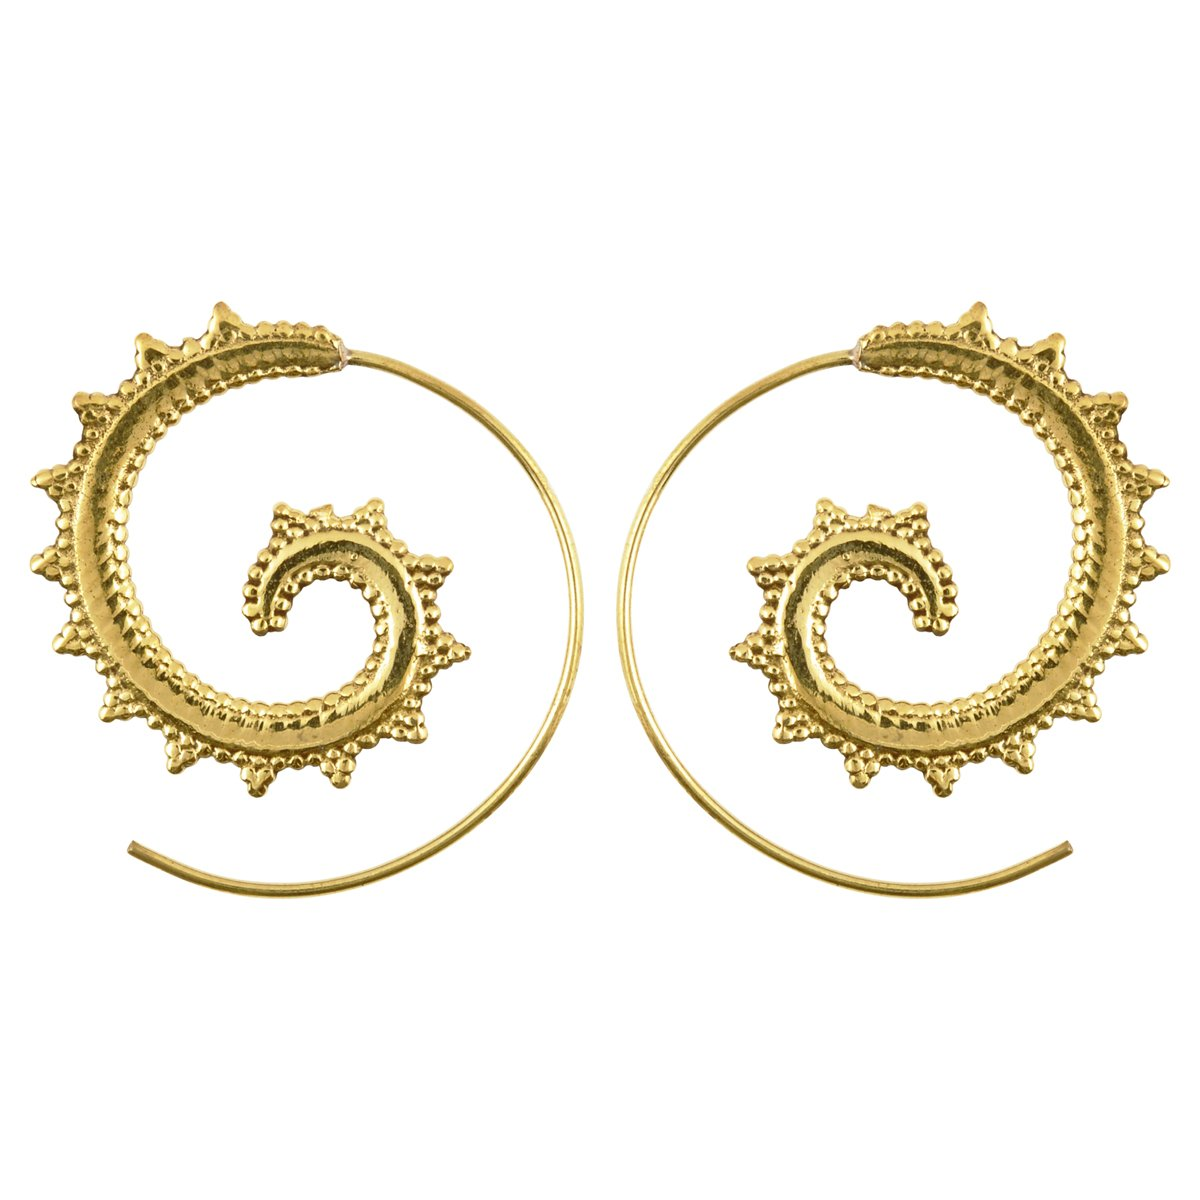 Finished Jewelry-Simple-Brass Victorian Gold Spiral Earrings